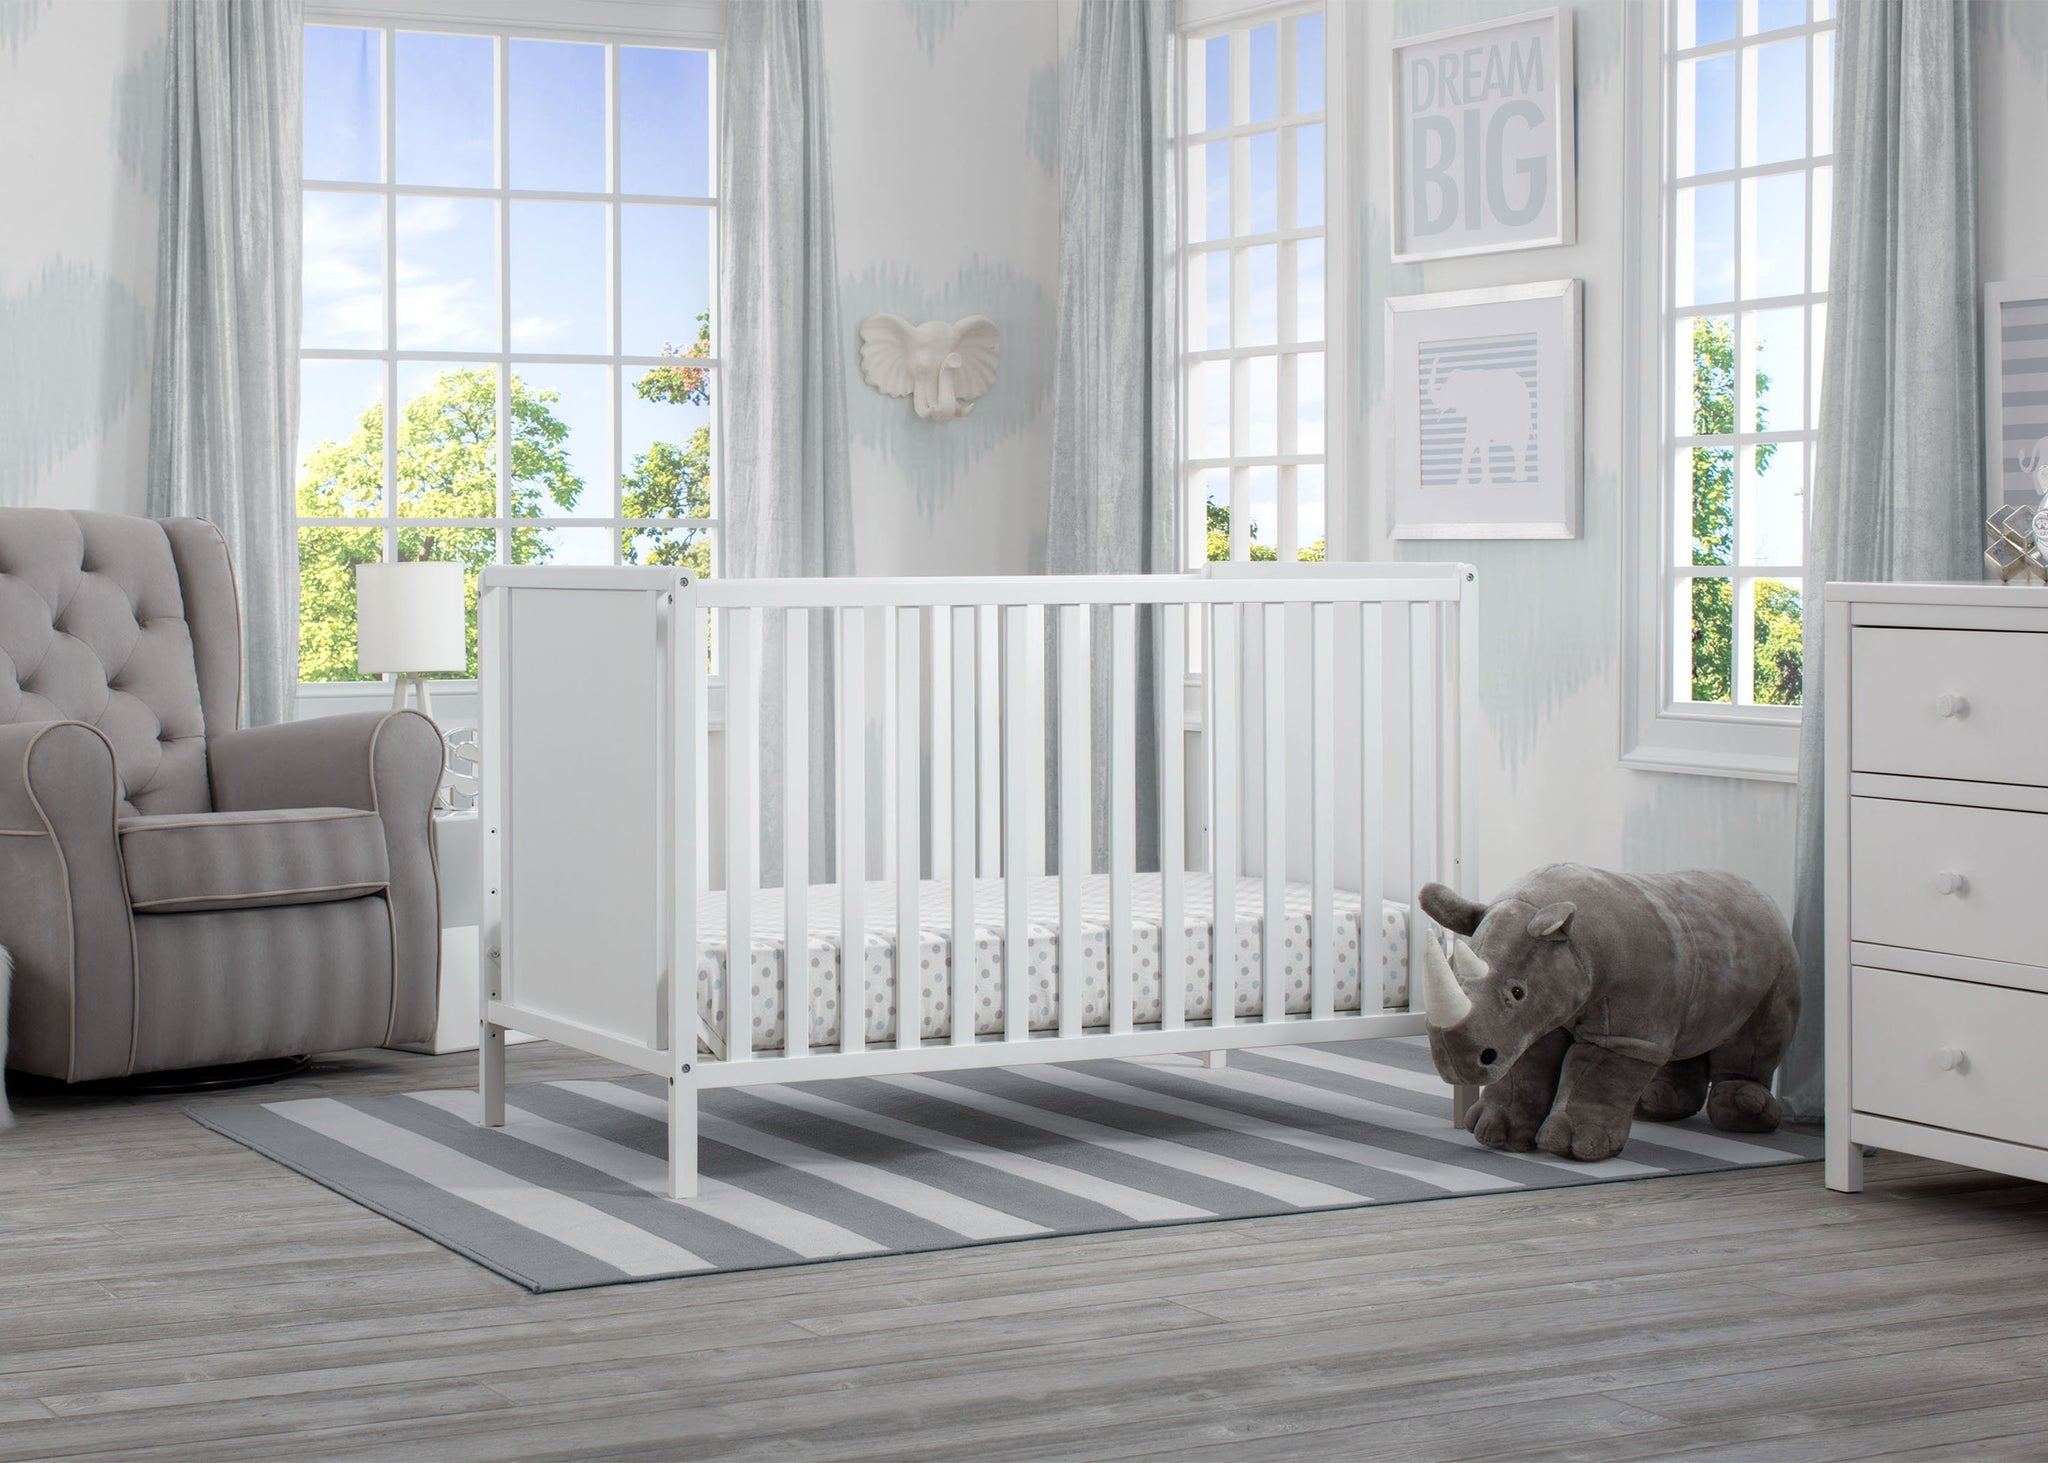 Delta Children Bianca White (130) Heartland Classic 4-in-1 Convertible Crib, Room, c1c